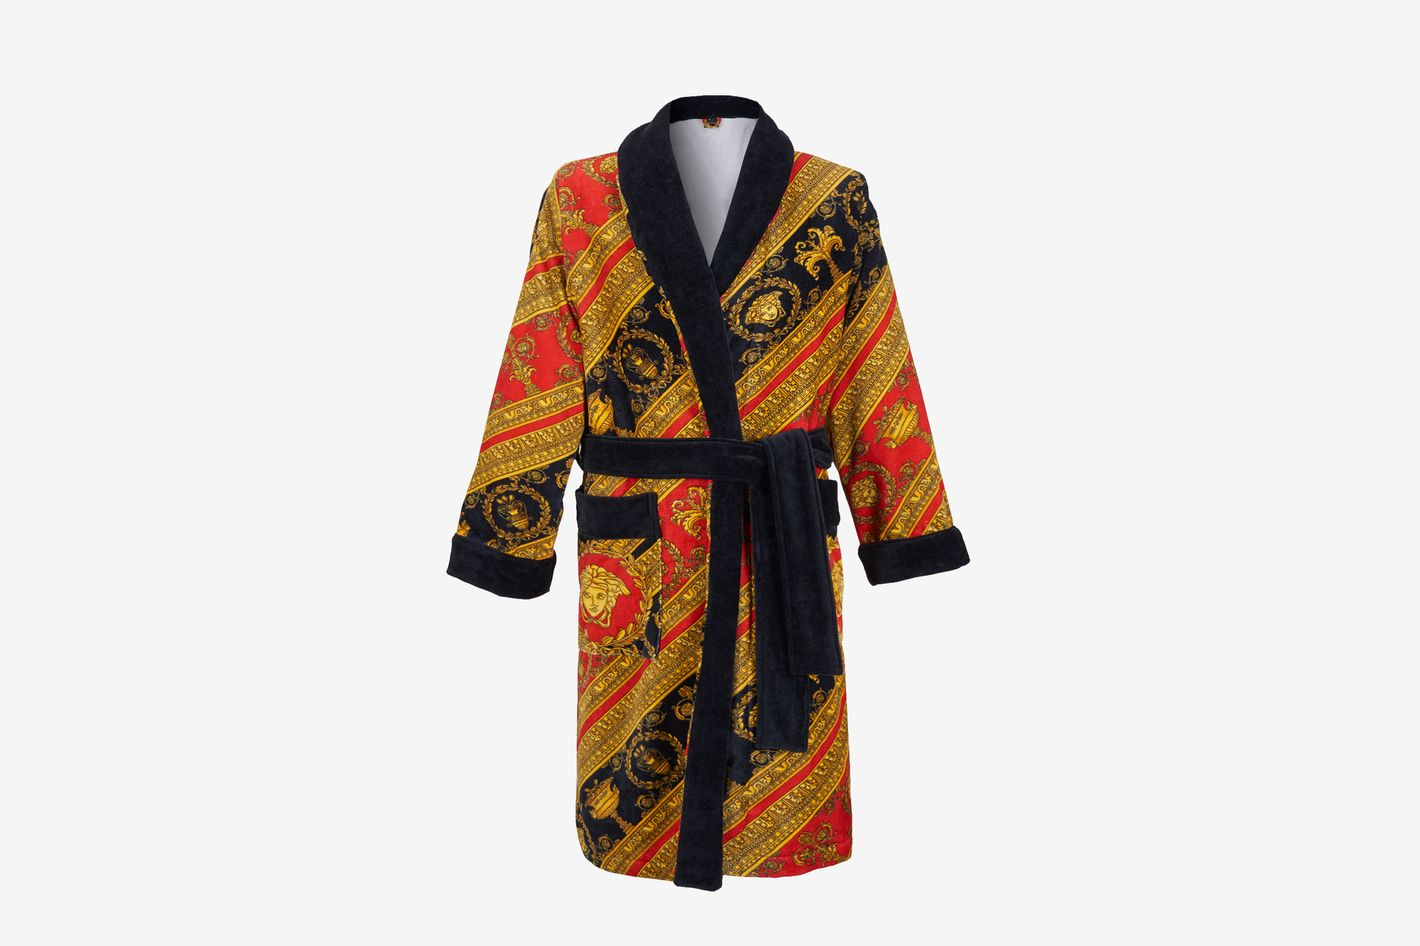 Versace I ♡ Baroque Terry Cloth Bathrobe